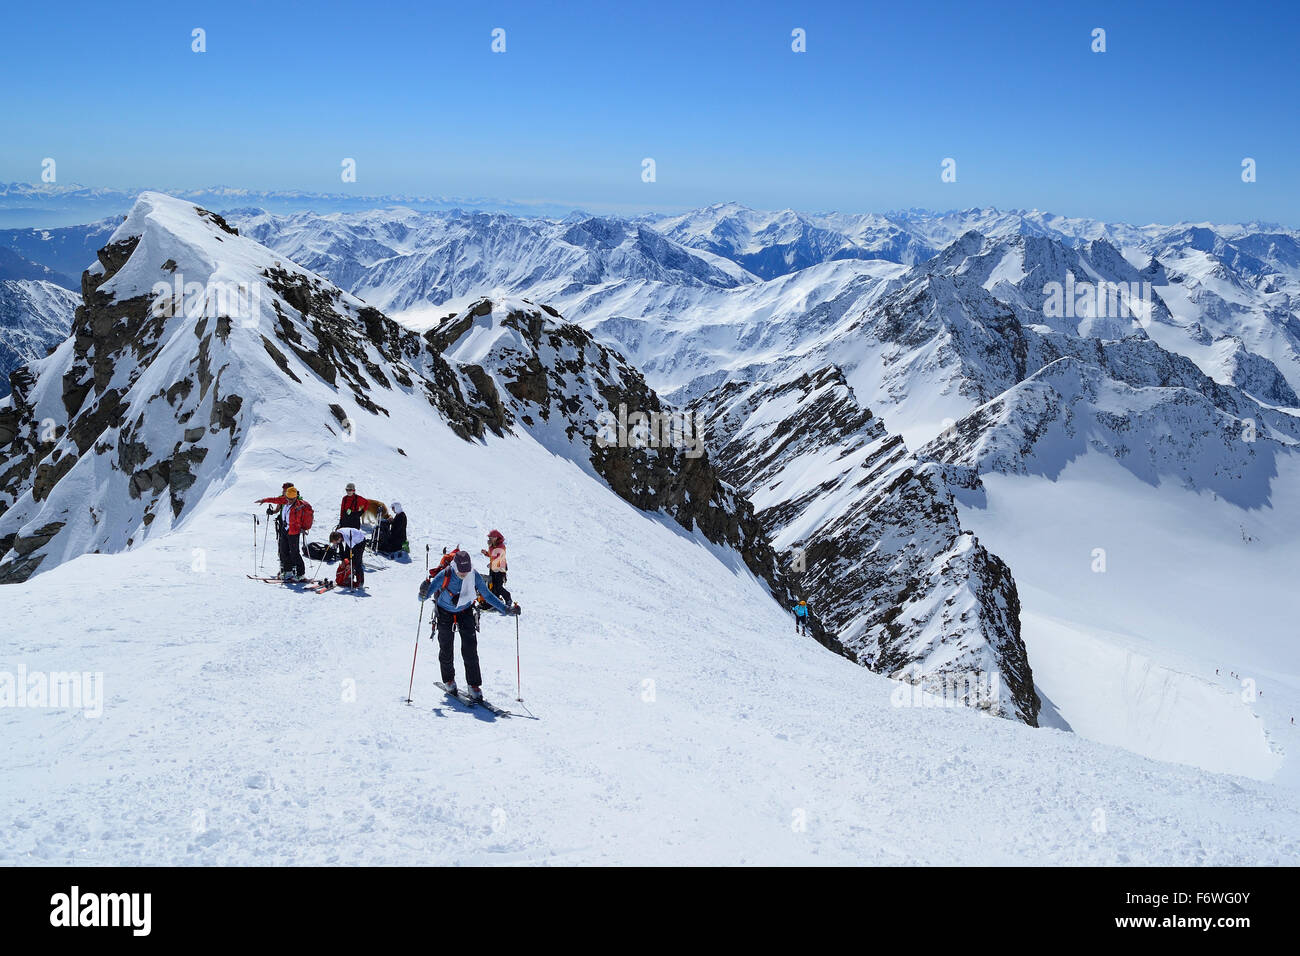 Group of persons back-country skiing standing in notch in front of the summit of Weisskugel, Weisskugel, Oetztal - Stock Image